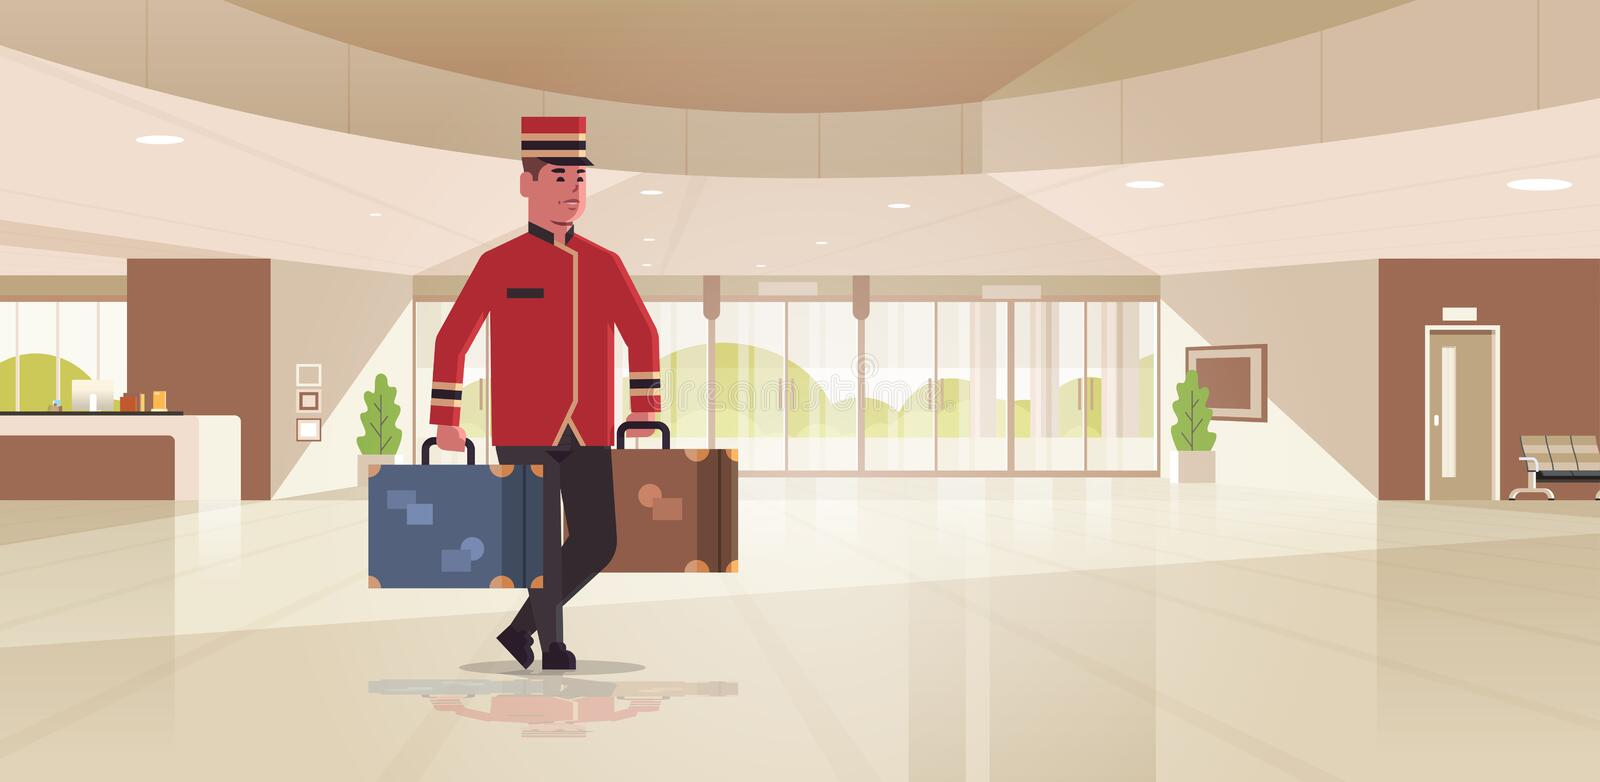 Bell boy carrying suitcases hotel service concept bellman holding luggage male worker in uniform modern reception area. Lobby interior full length horizontal vector illustration